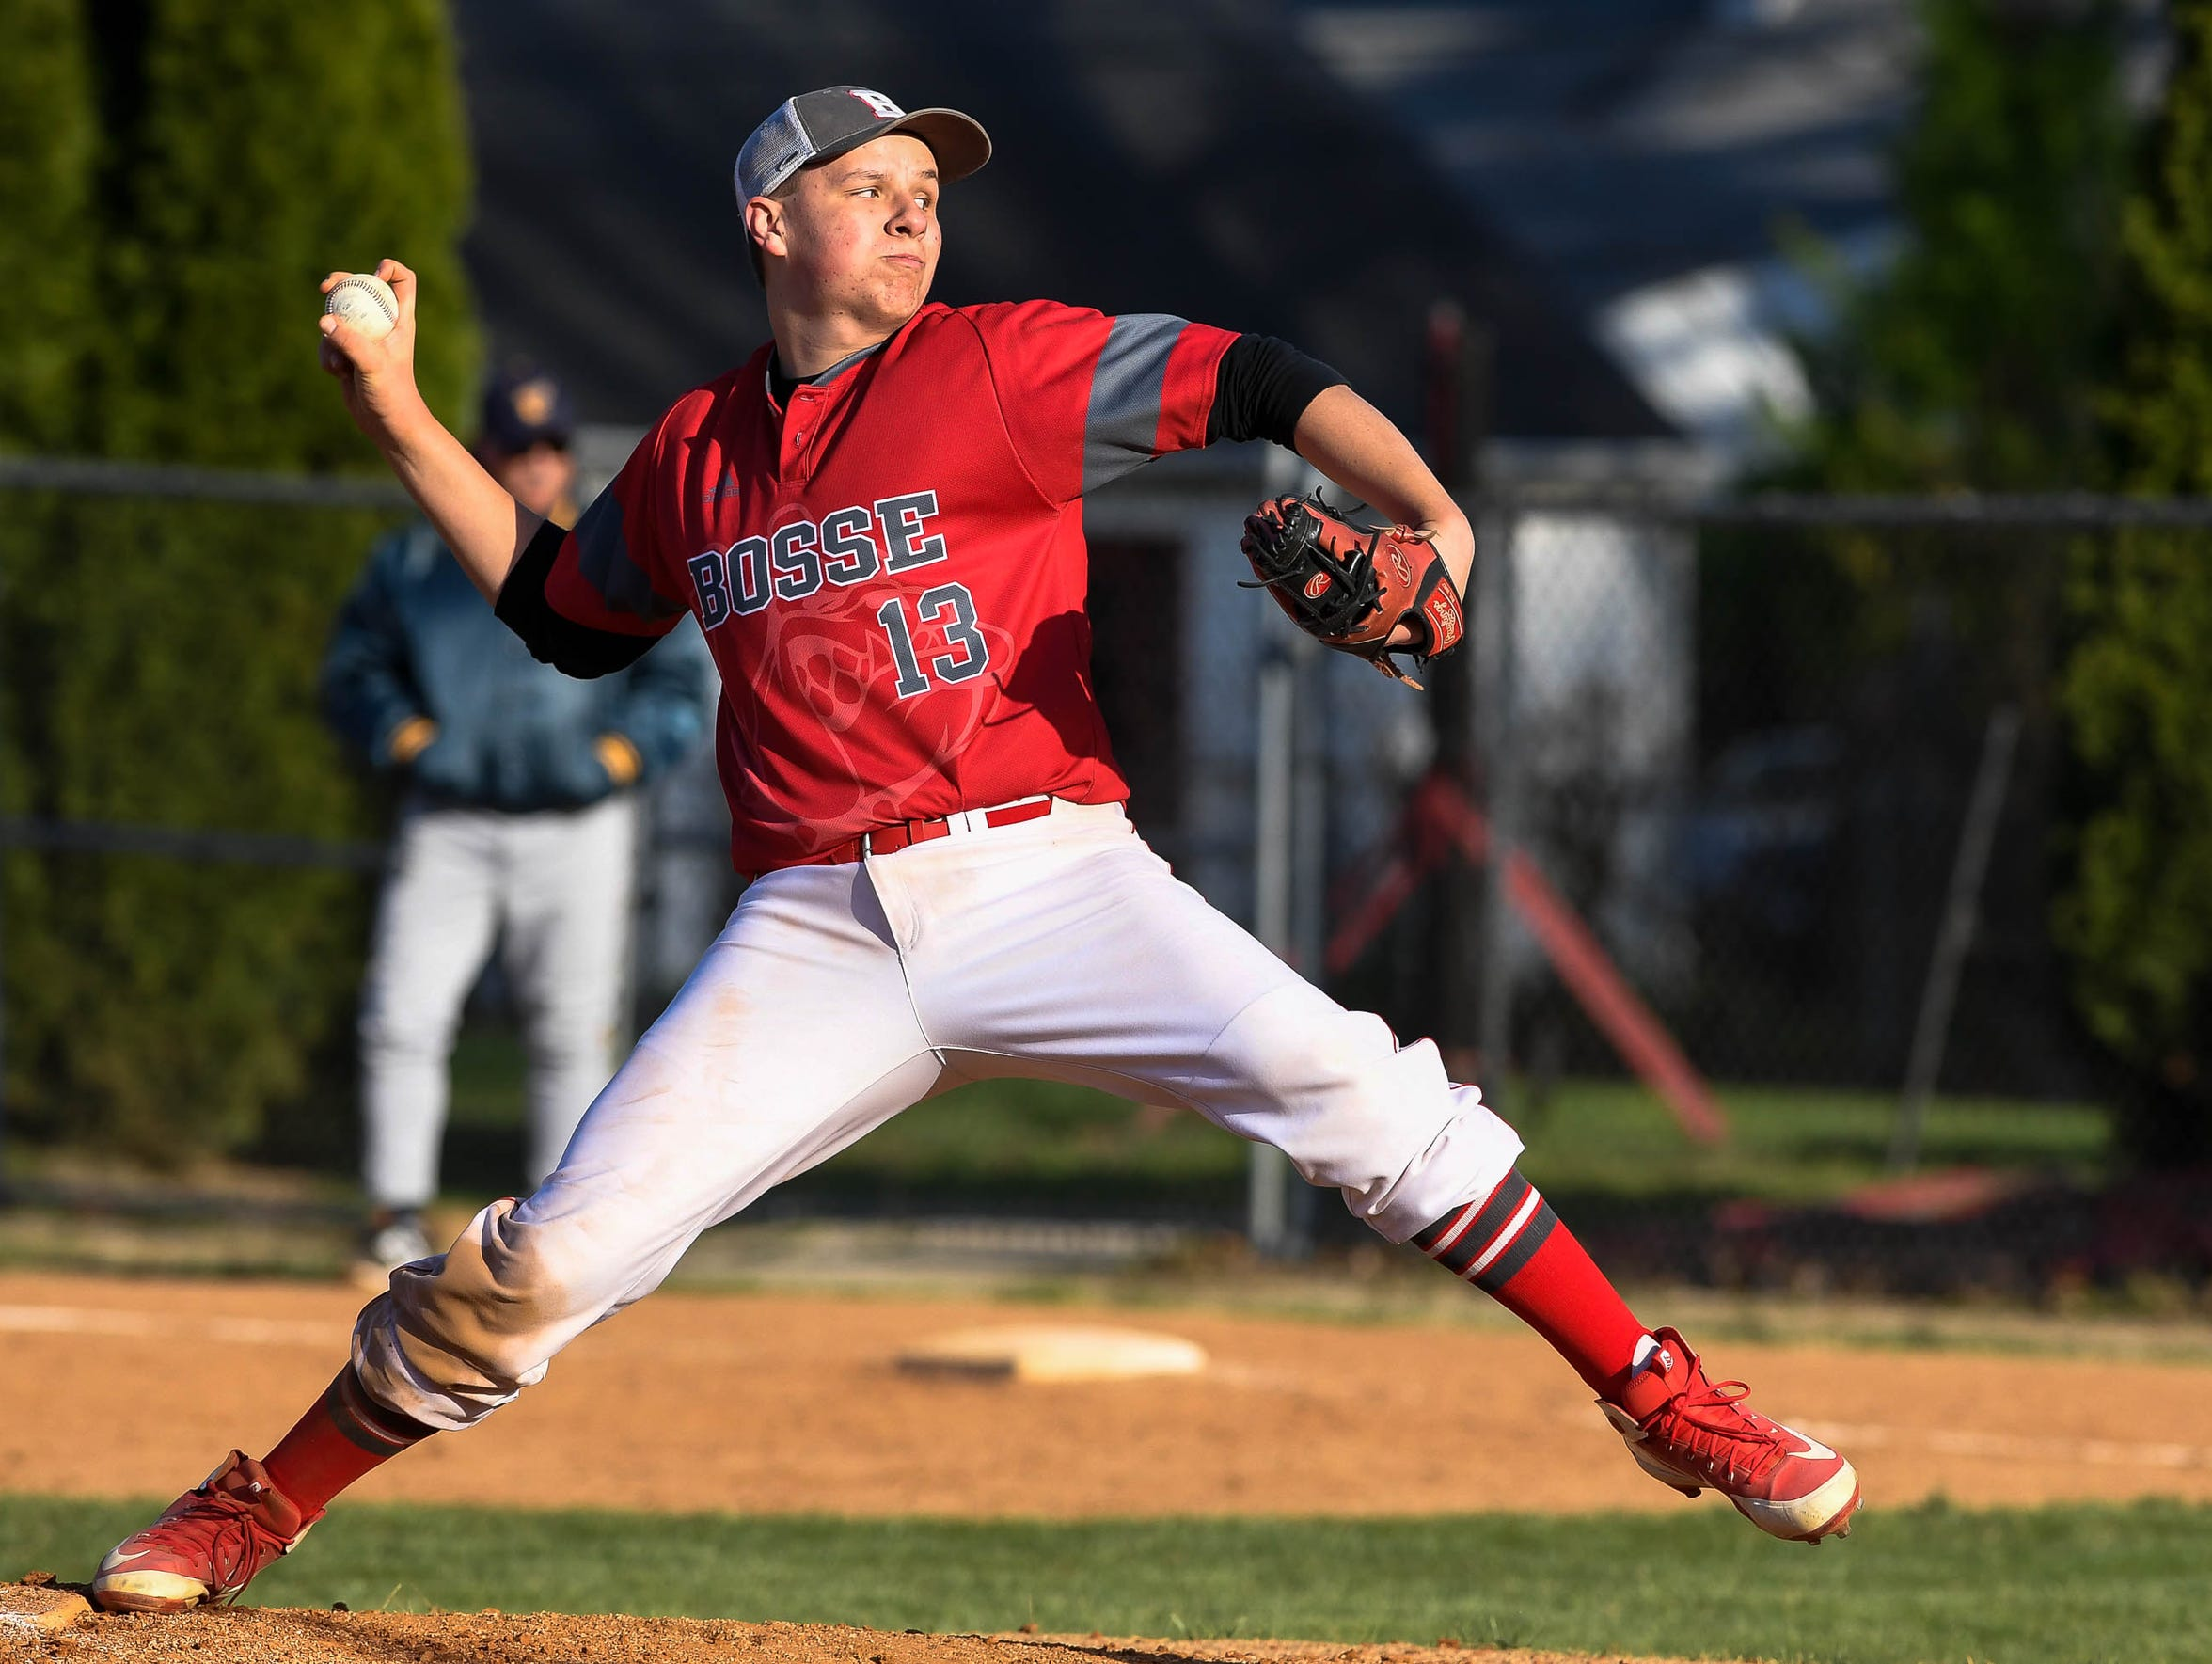 Bosse's starting pitcher Zack Curtis (13) pitches as